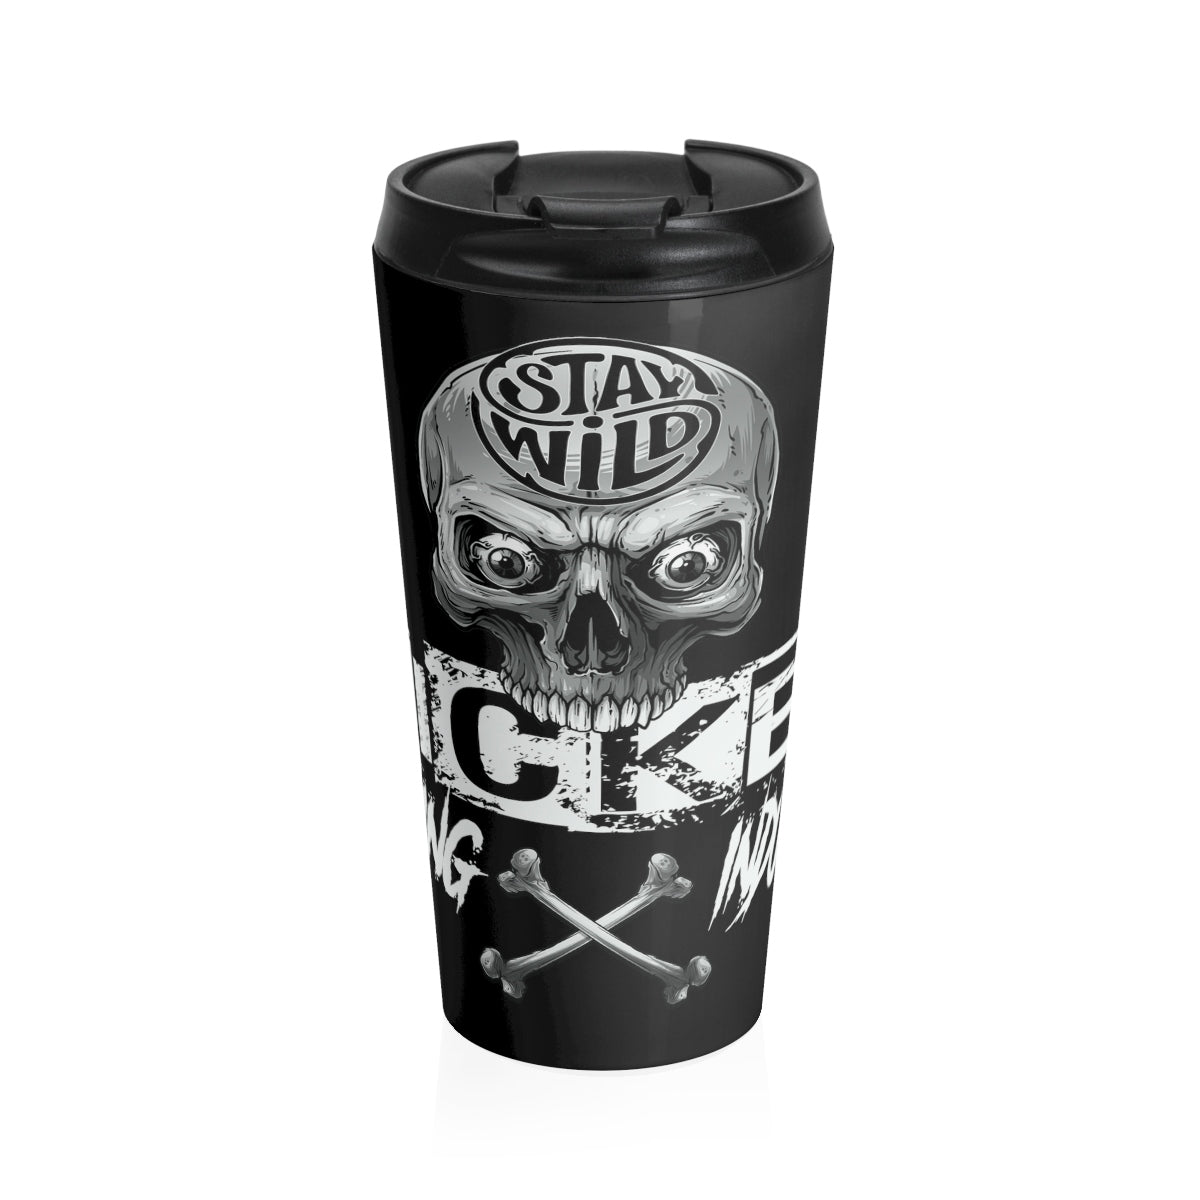 Stay Wild 4/ Black N White/ Stainless Steel Travel Mug